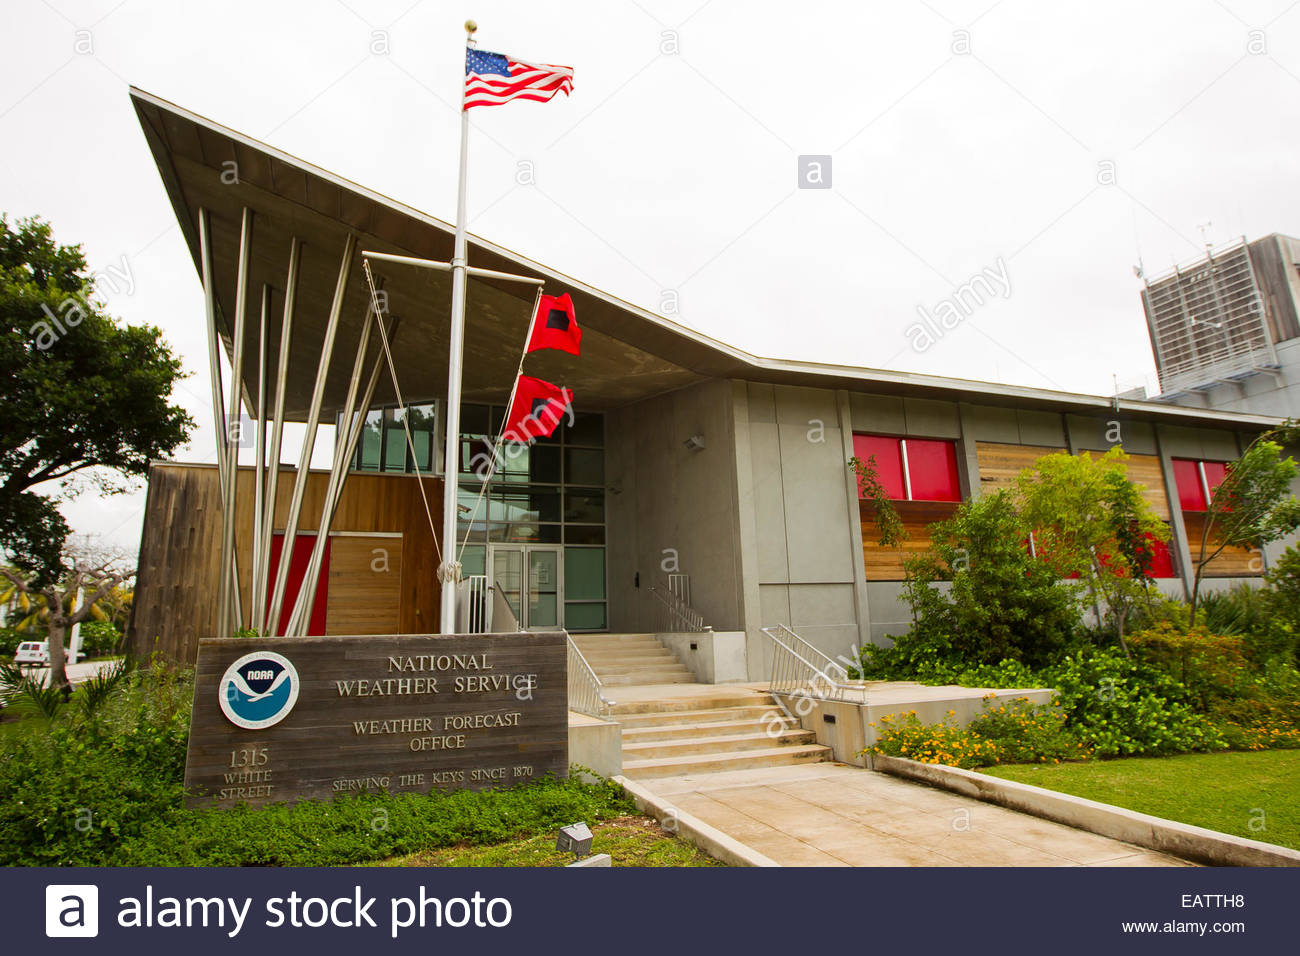 Weather Service Stock Photos & Weather Service Stock Images - Alamy